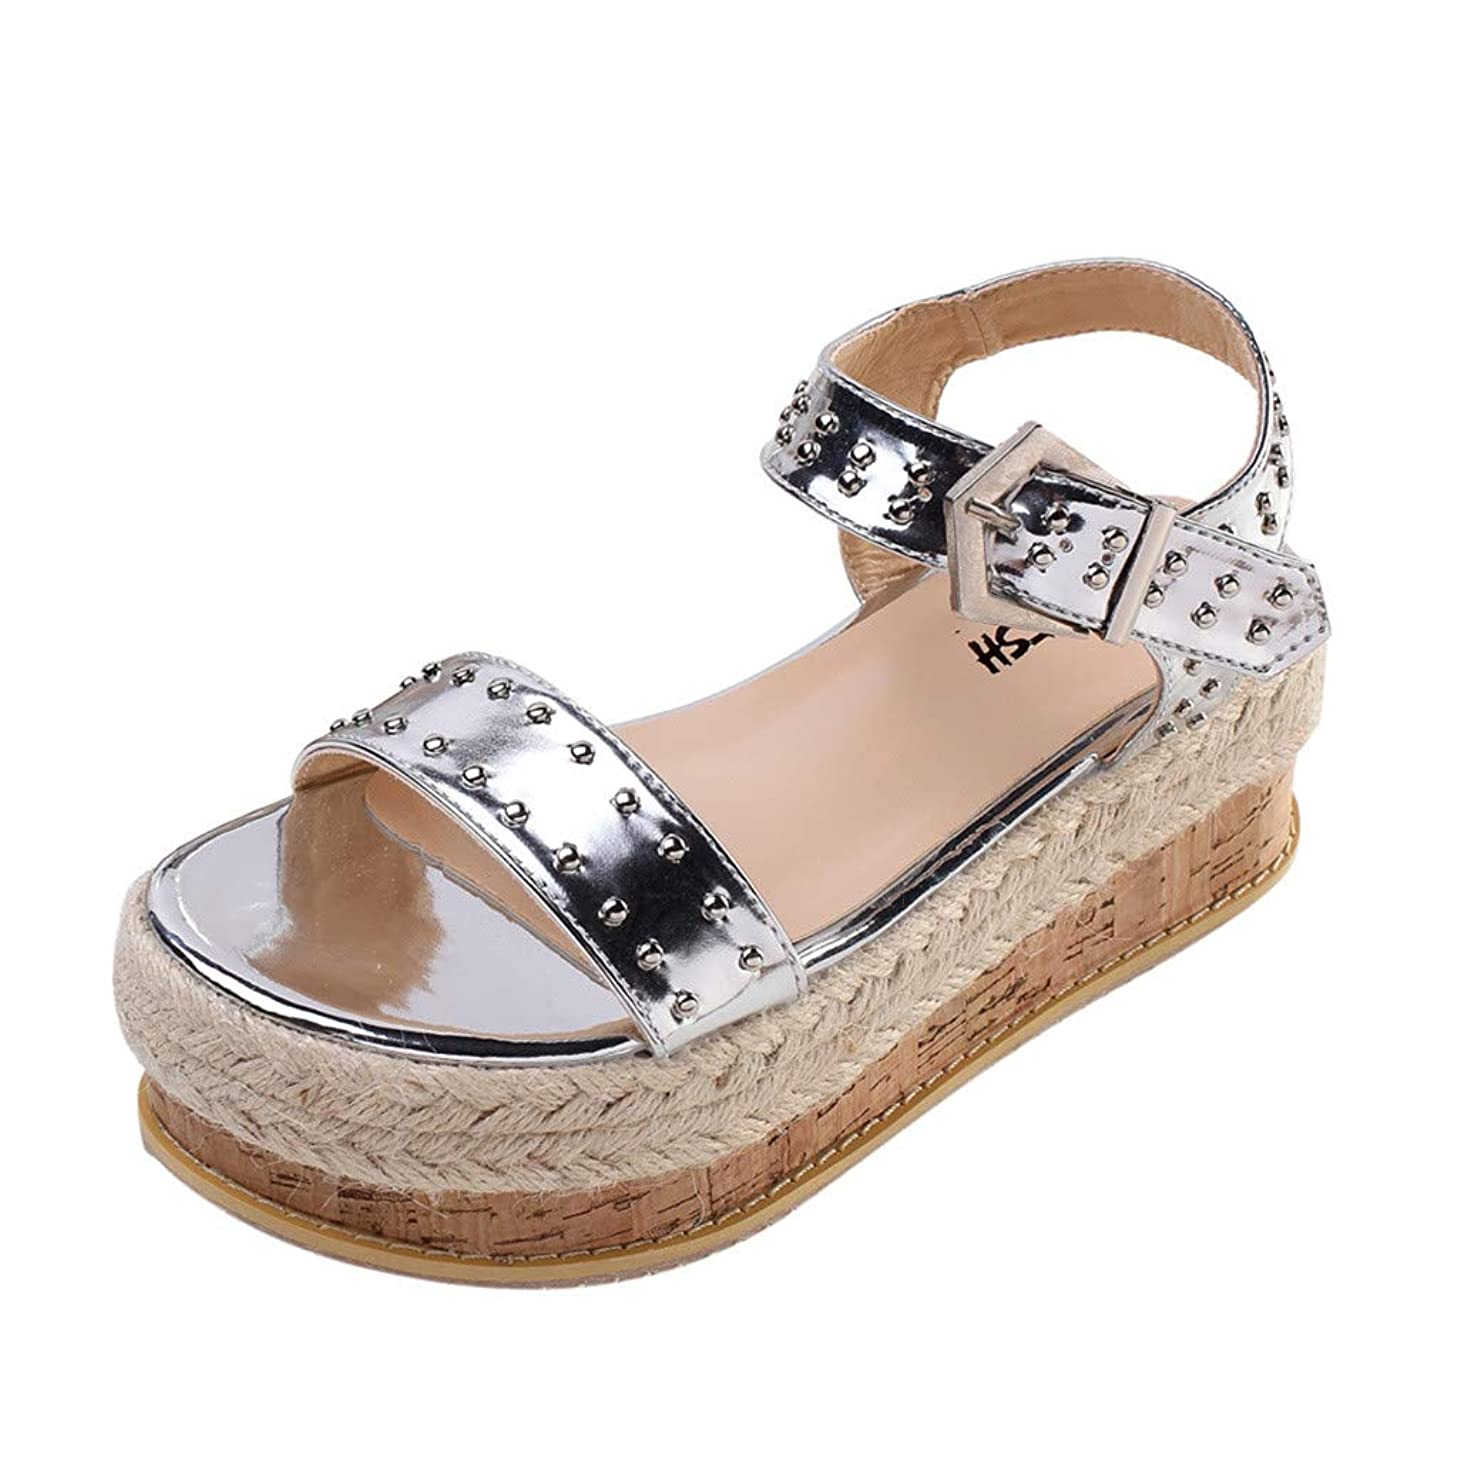 Thick-Soled Sandals,HOSOME Summer Women's Thick-Soled Sandals Belt Buckle Flat Sandals Rivet Beach Shoes